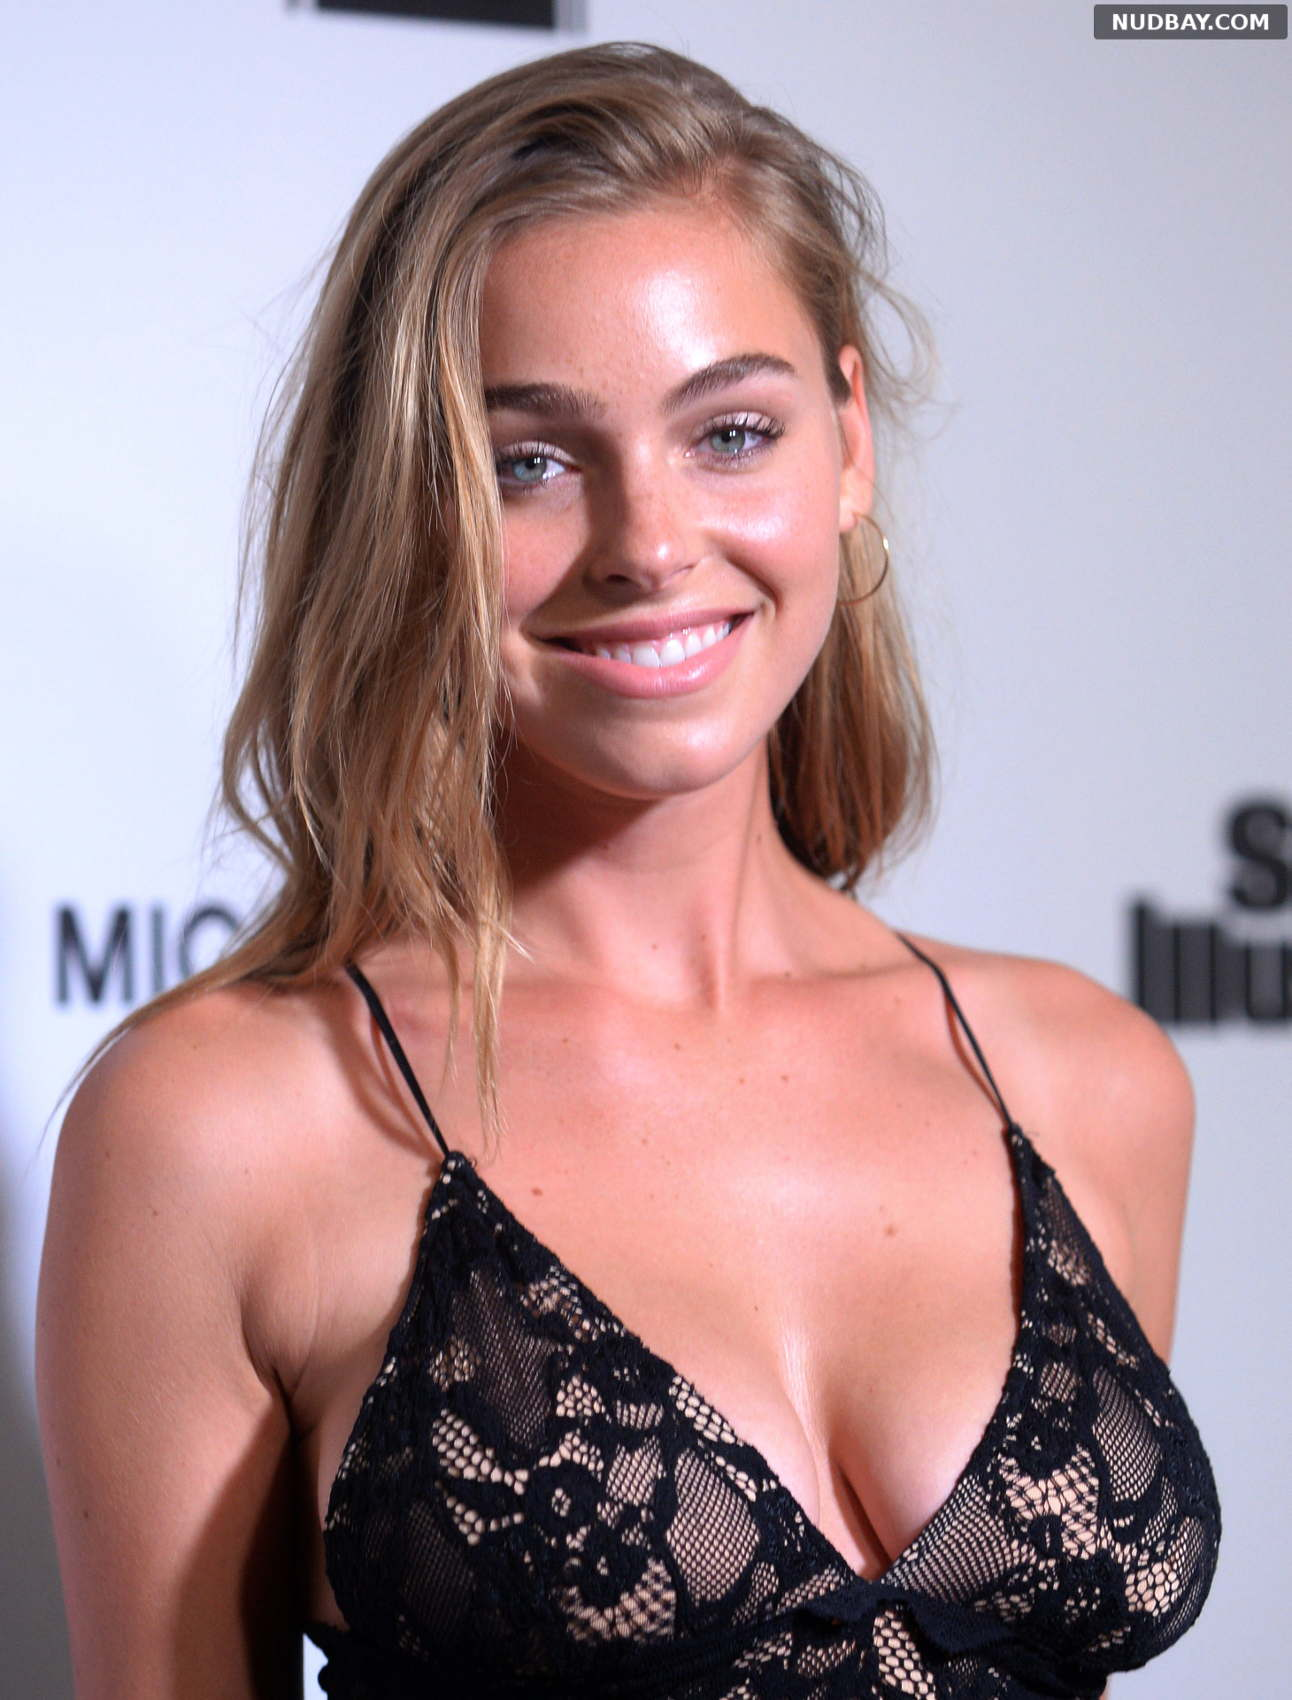 Elizabeth Turner cleavage at Illustrated Fashionable 50 in Hollywood Jul 18 2017